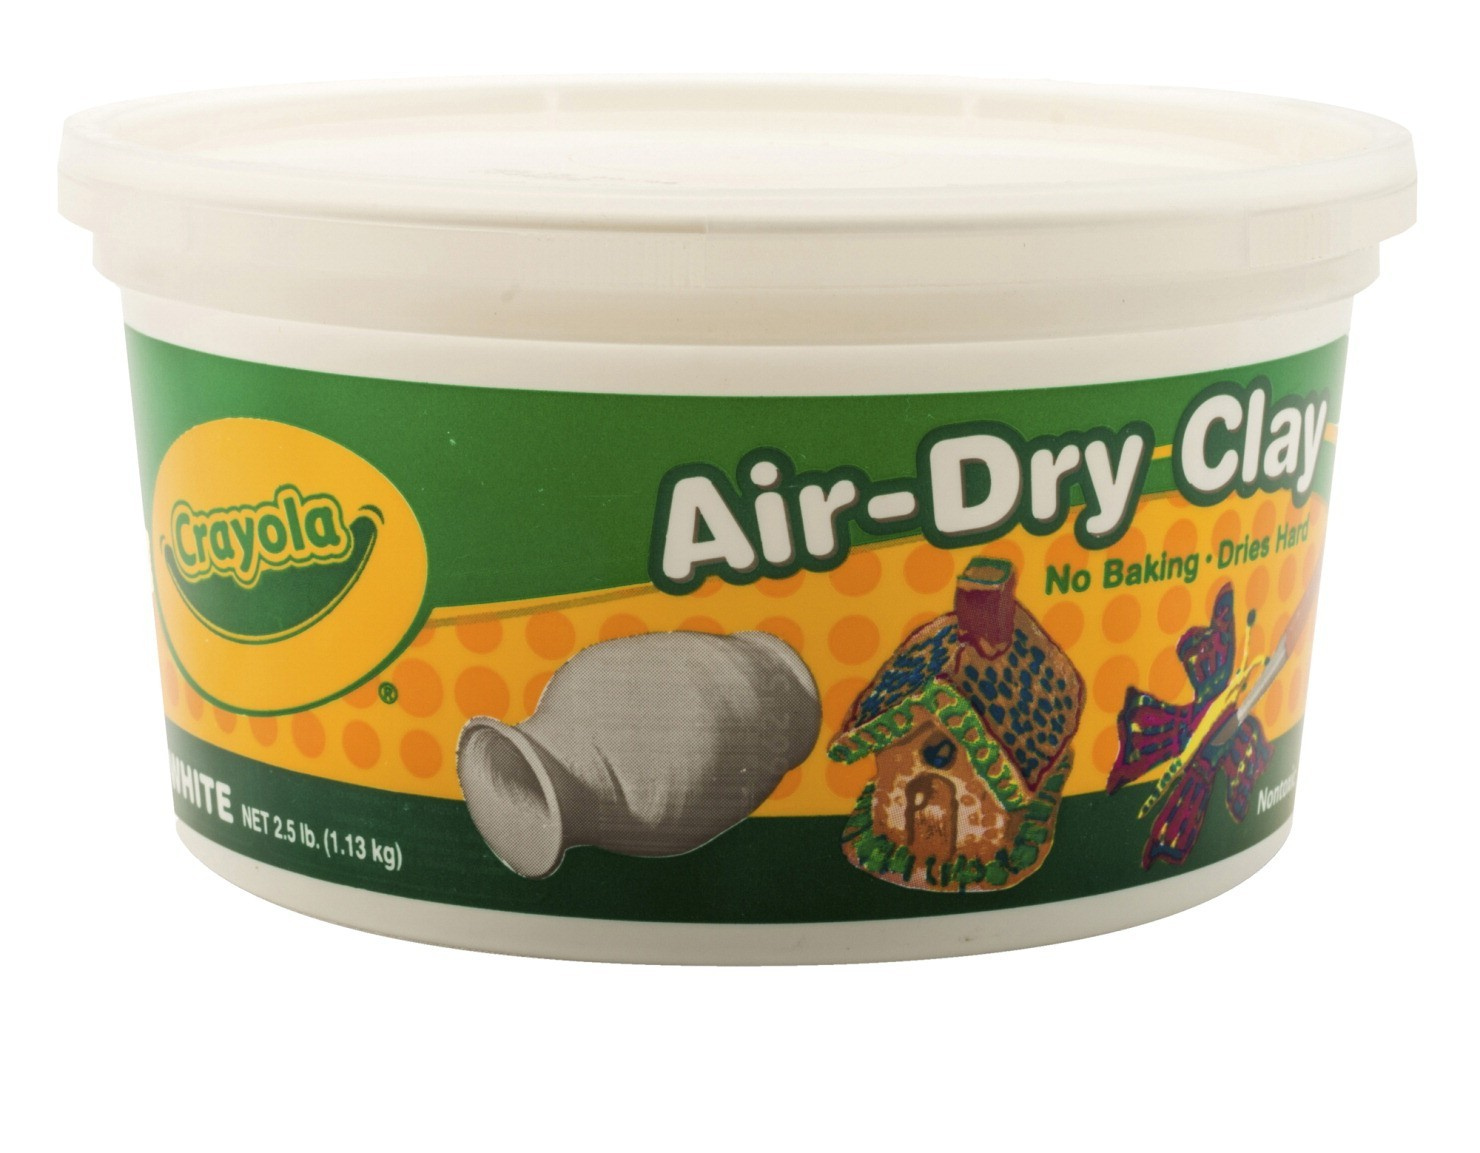 Crayola Air-Dry Modeling Clay, 5-Lb. Bucket, White